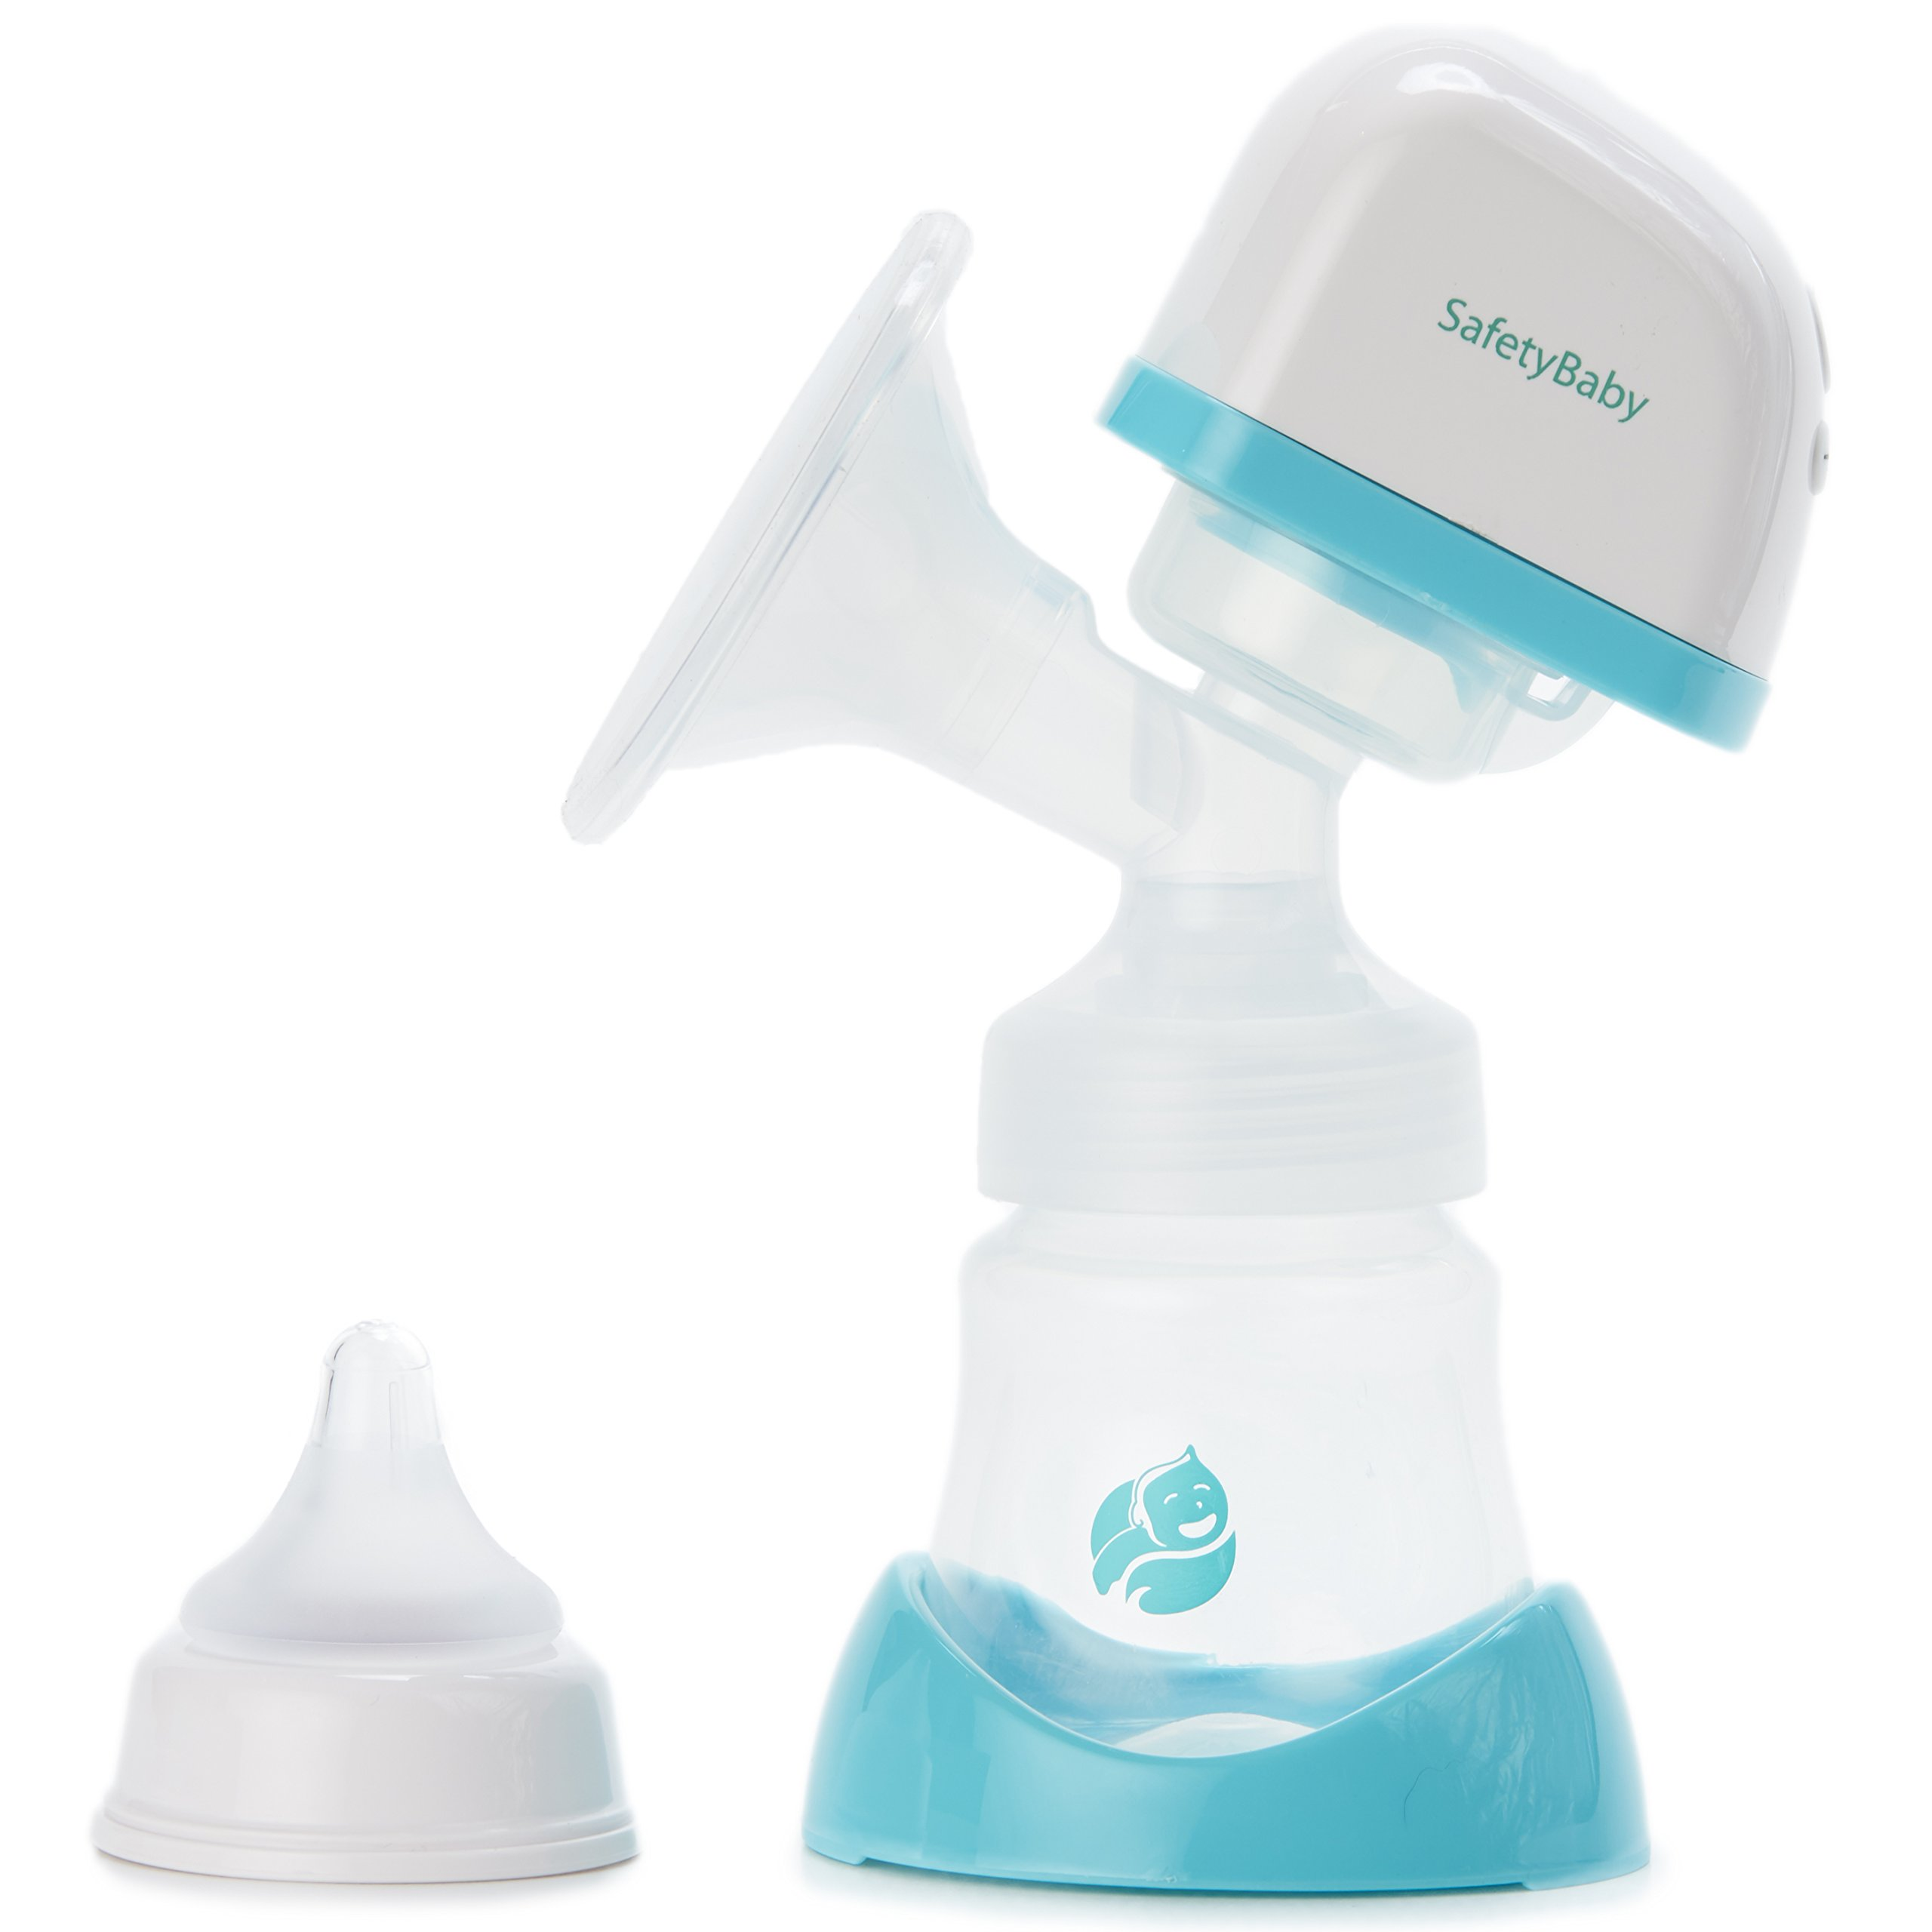 Safety Baby Electric Breast Pump - Portable and Quiet